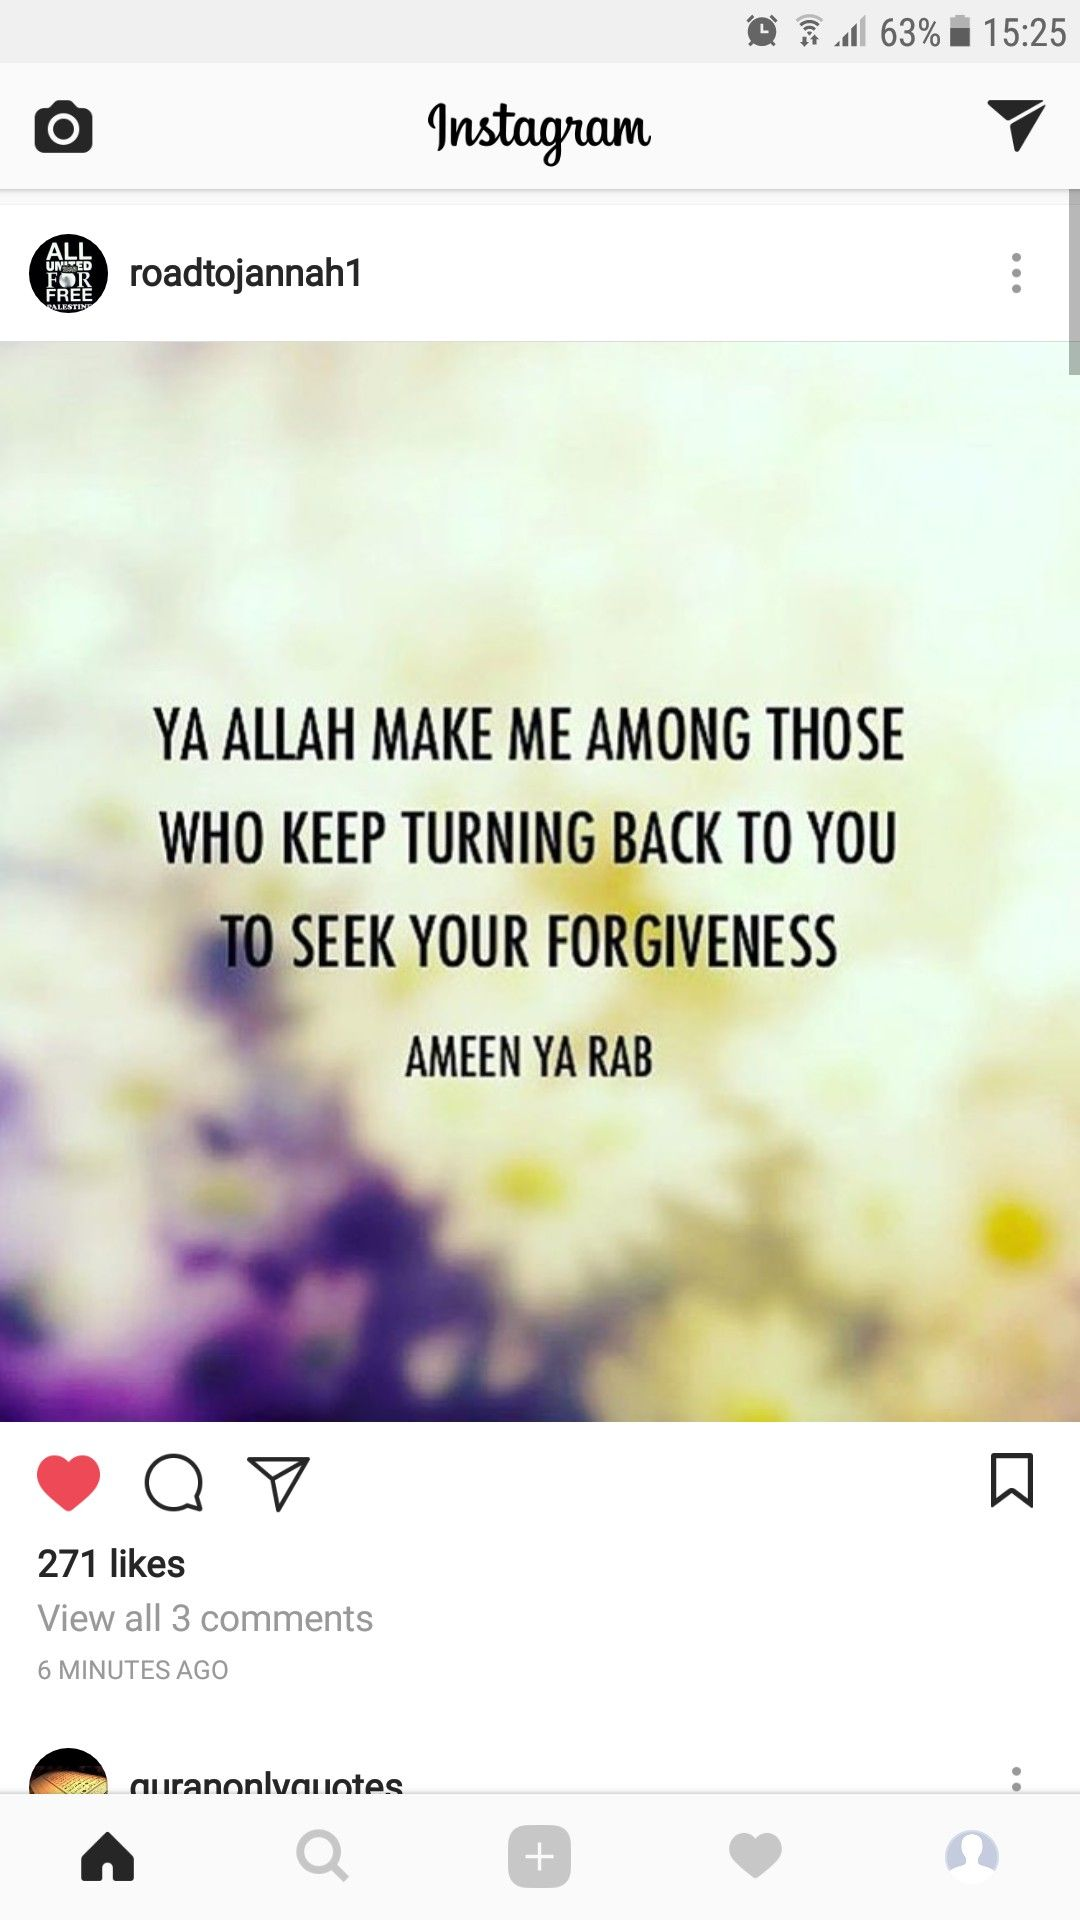 Pin by momina on i pinterest islam allah and islamic islamic phrases islamic quotes islamic teachings islam religion alhamdulillah allah qoute deen forgiveness altavistaventures Image collections